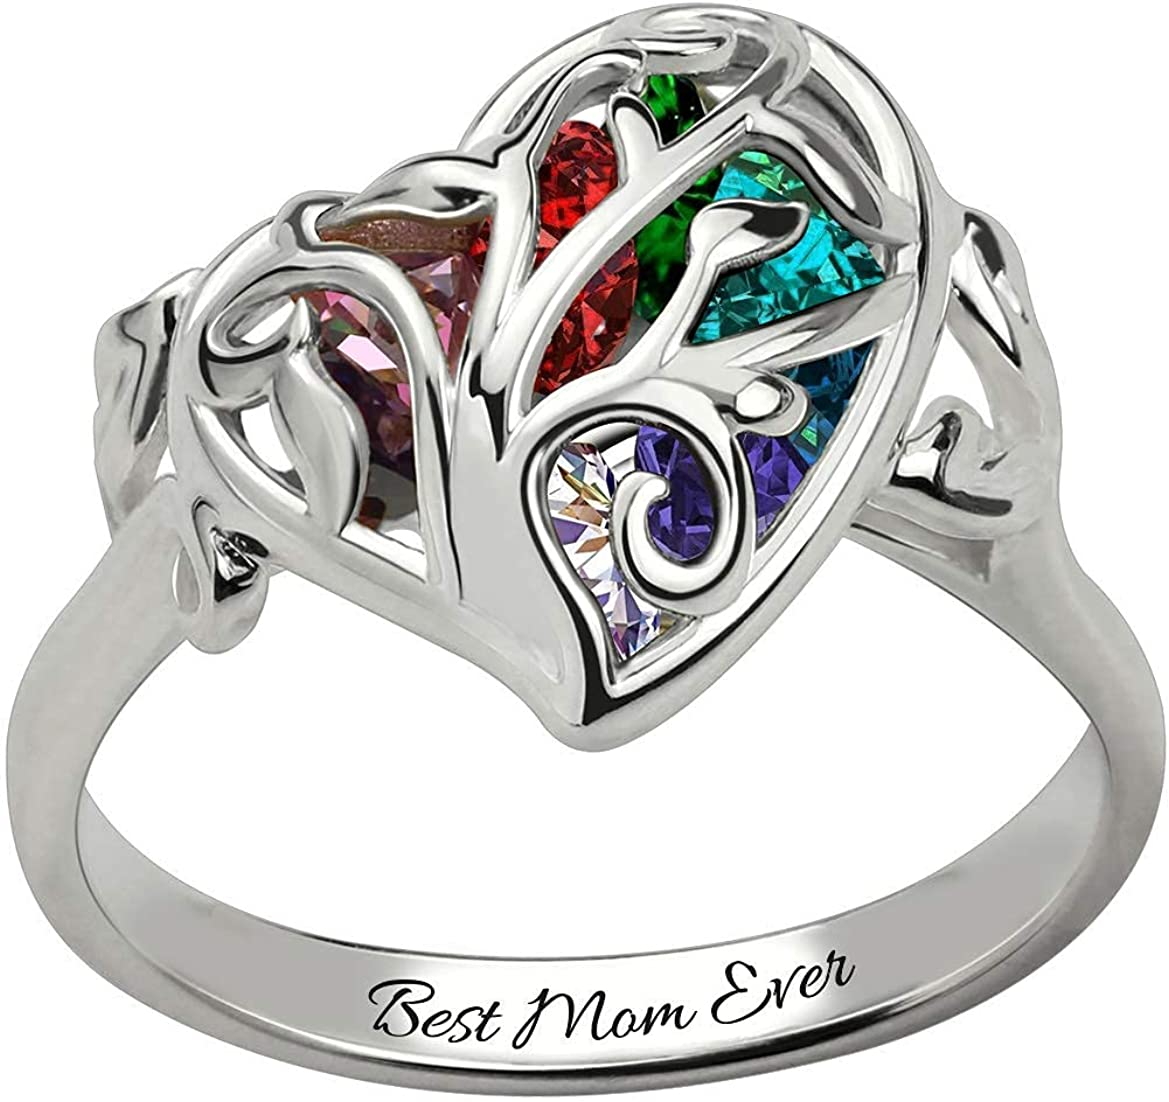 sold out Unikei Personalized Heart-Shaped cage Family with Ring Popular products Tree Hear